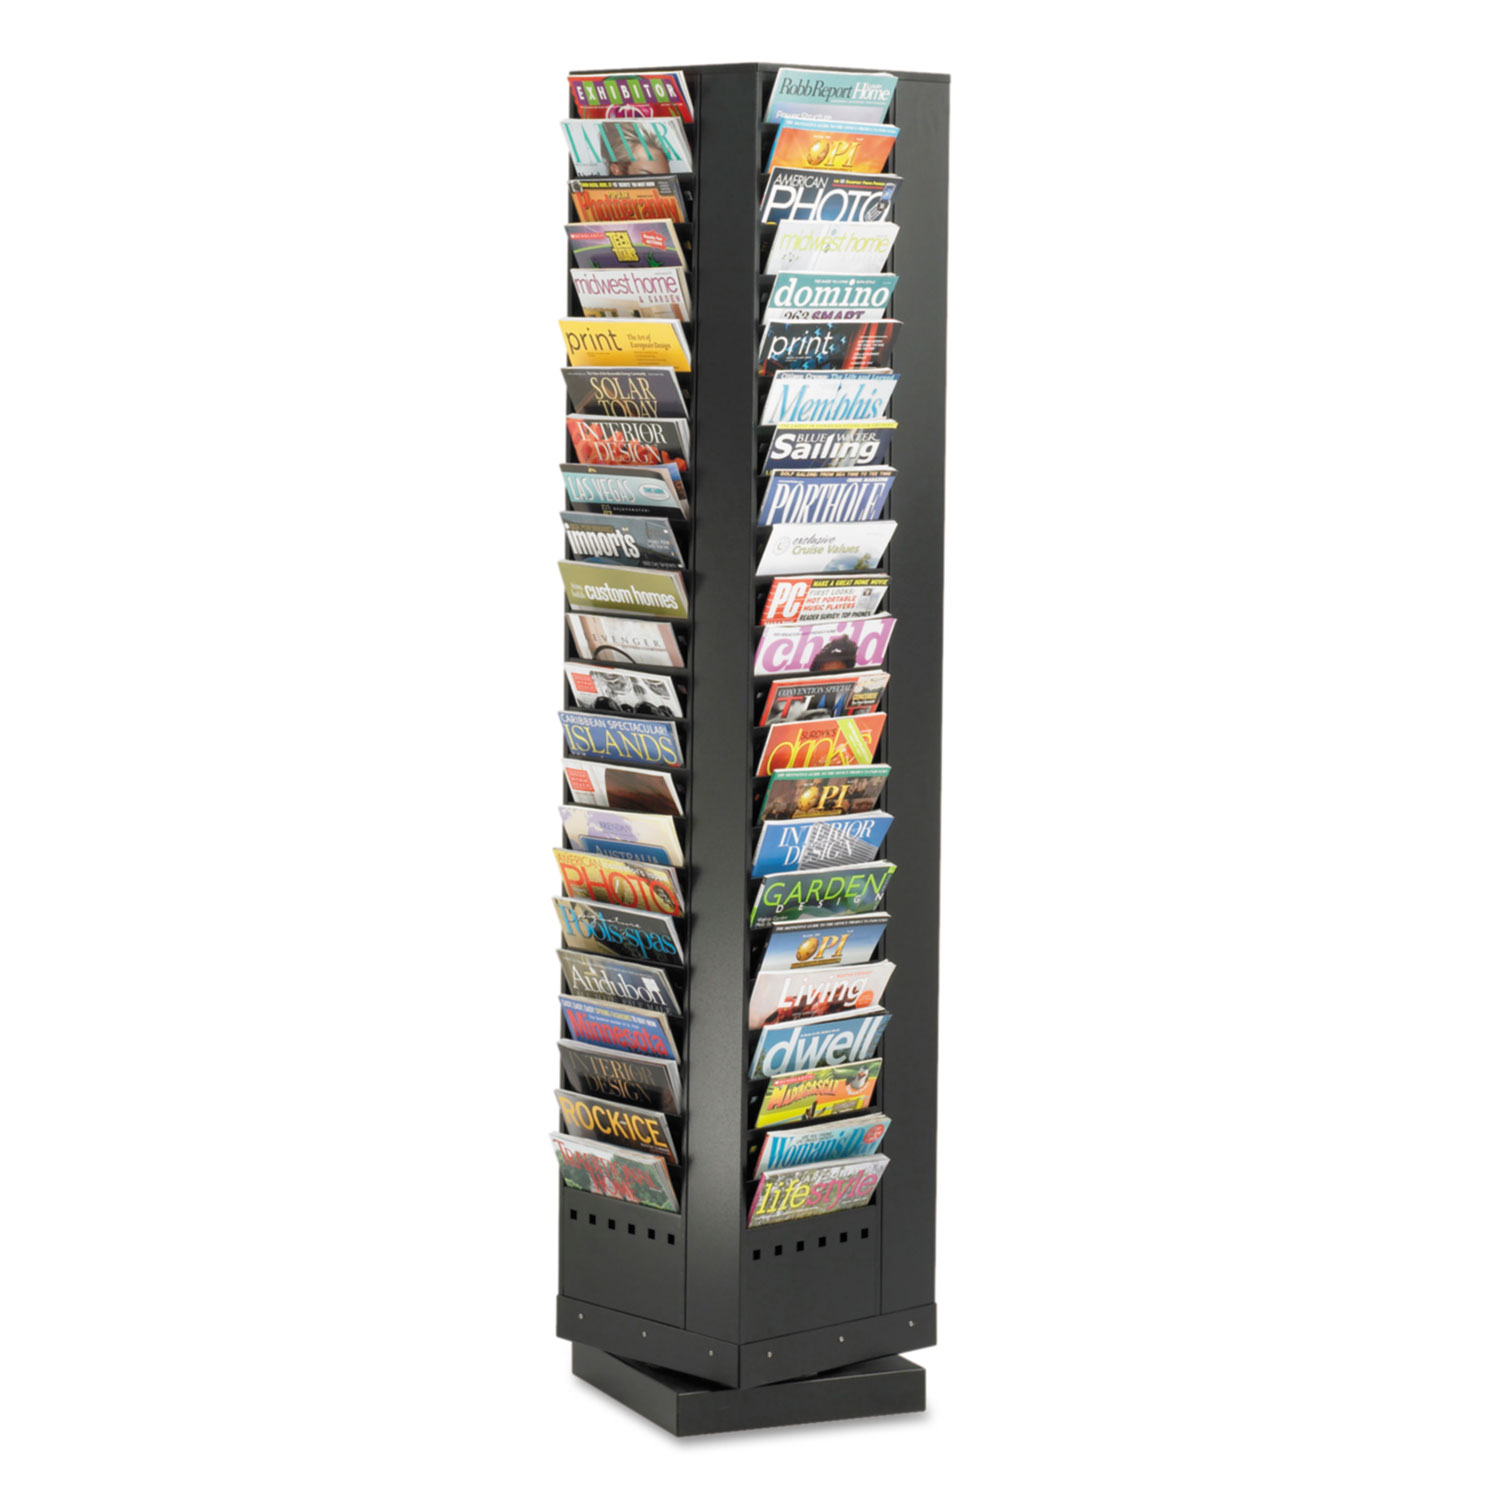 Steel Rotary Magazine Rack, 92 Compartments, 14w x 14d x 68h, Black